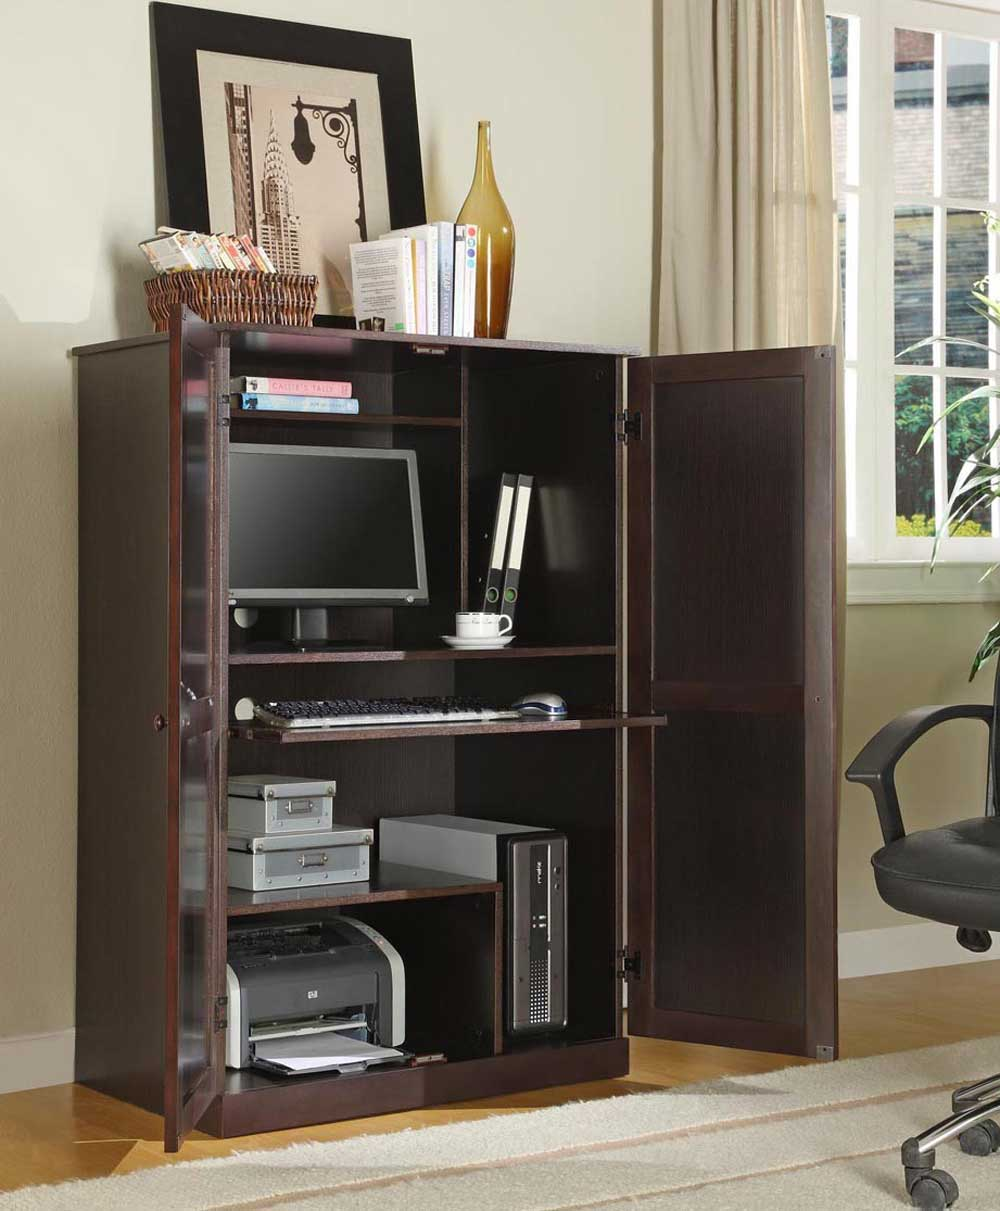 Modern computer corner armoire with front glass cover